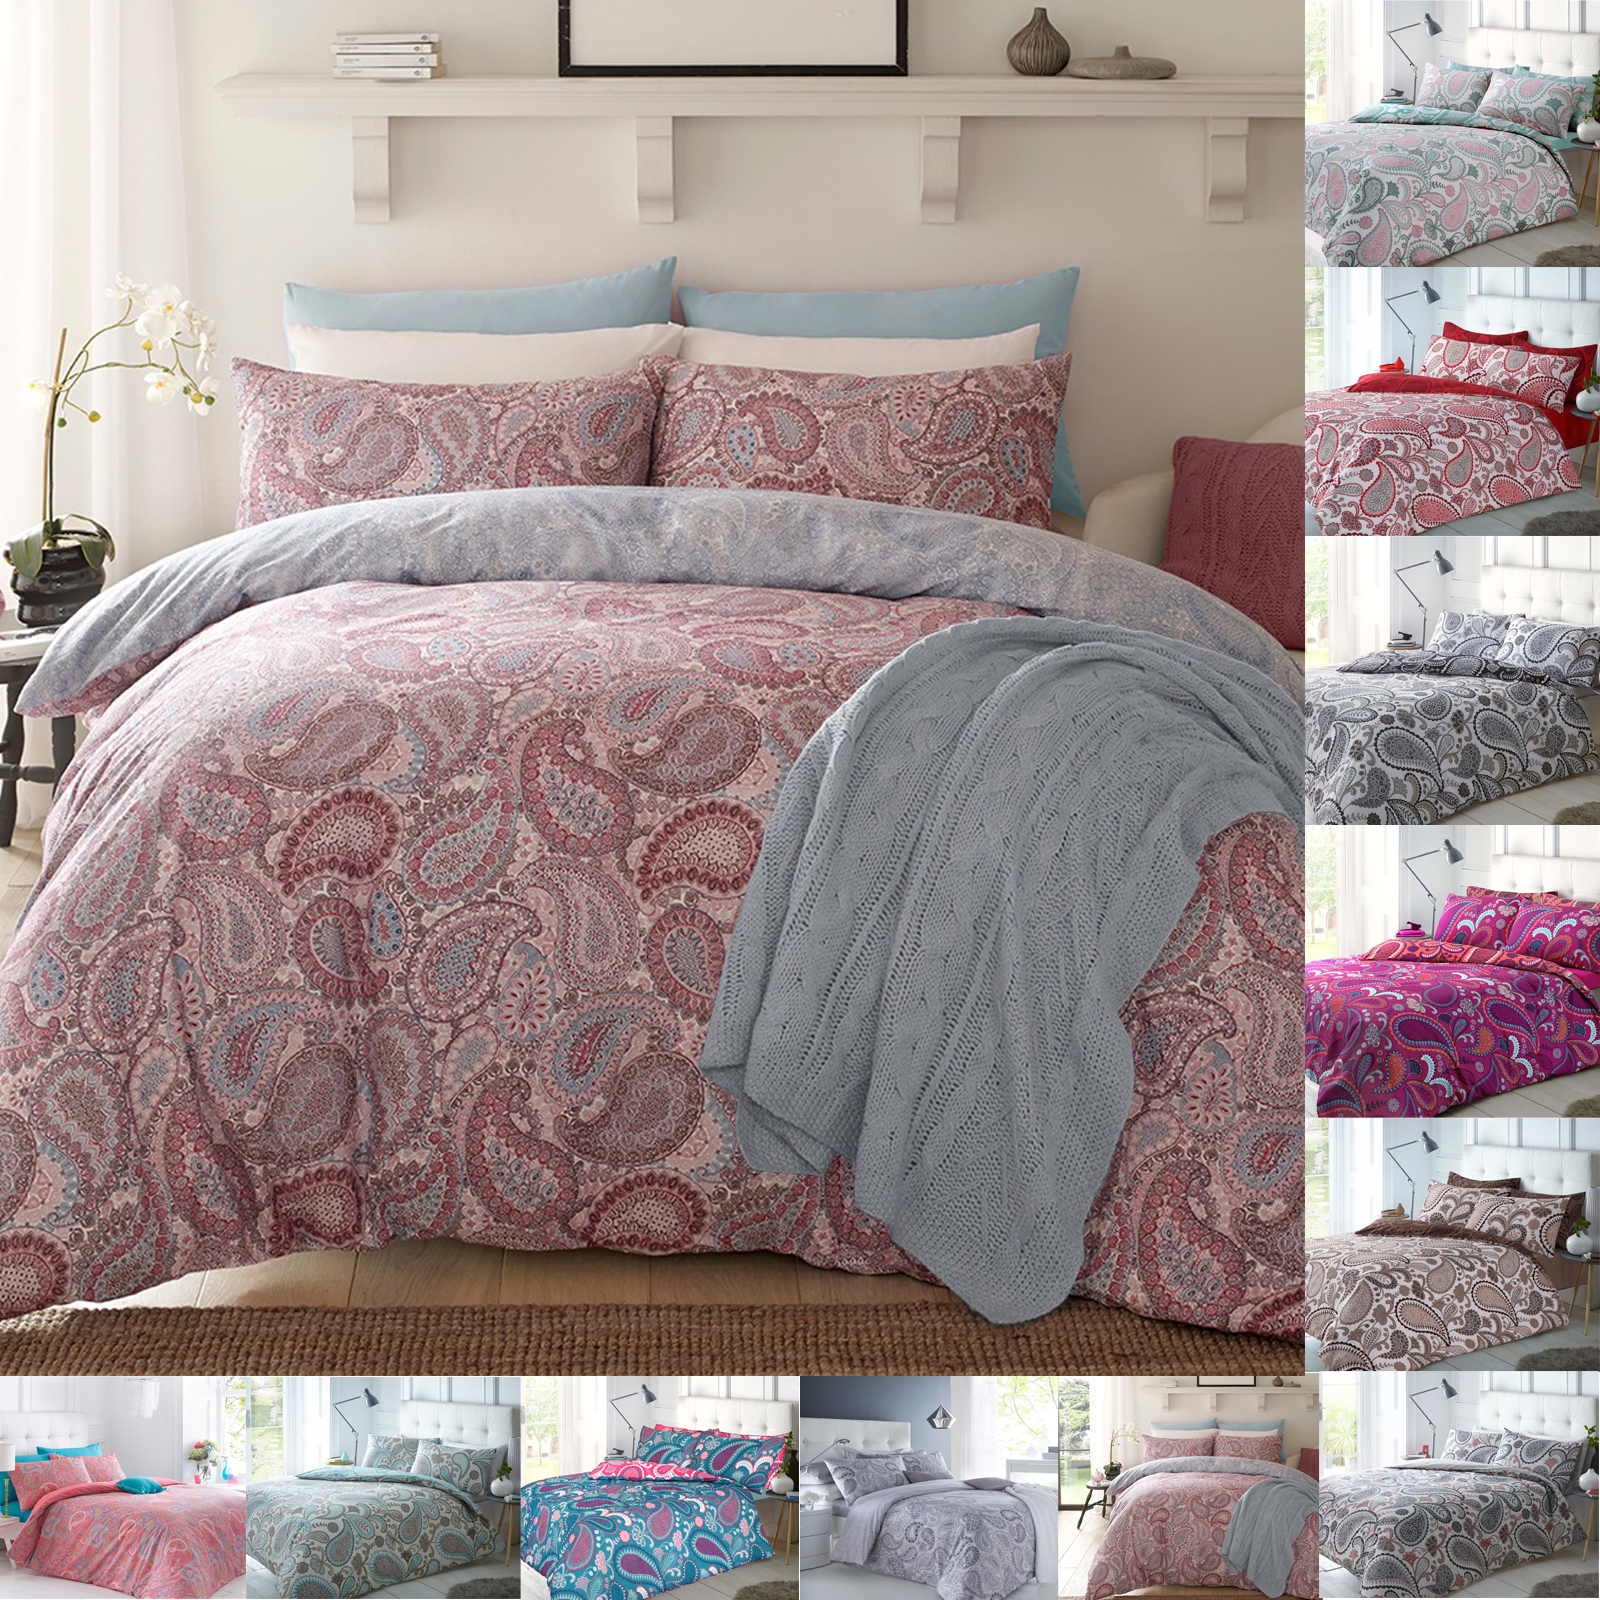 paisley and covers pillowcase duvet cover set elephant bedding